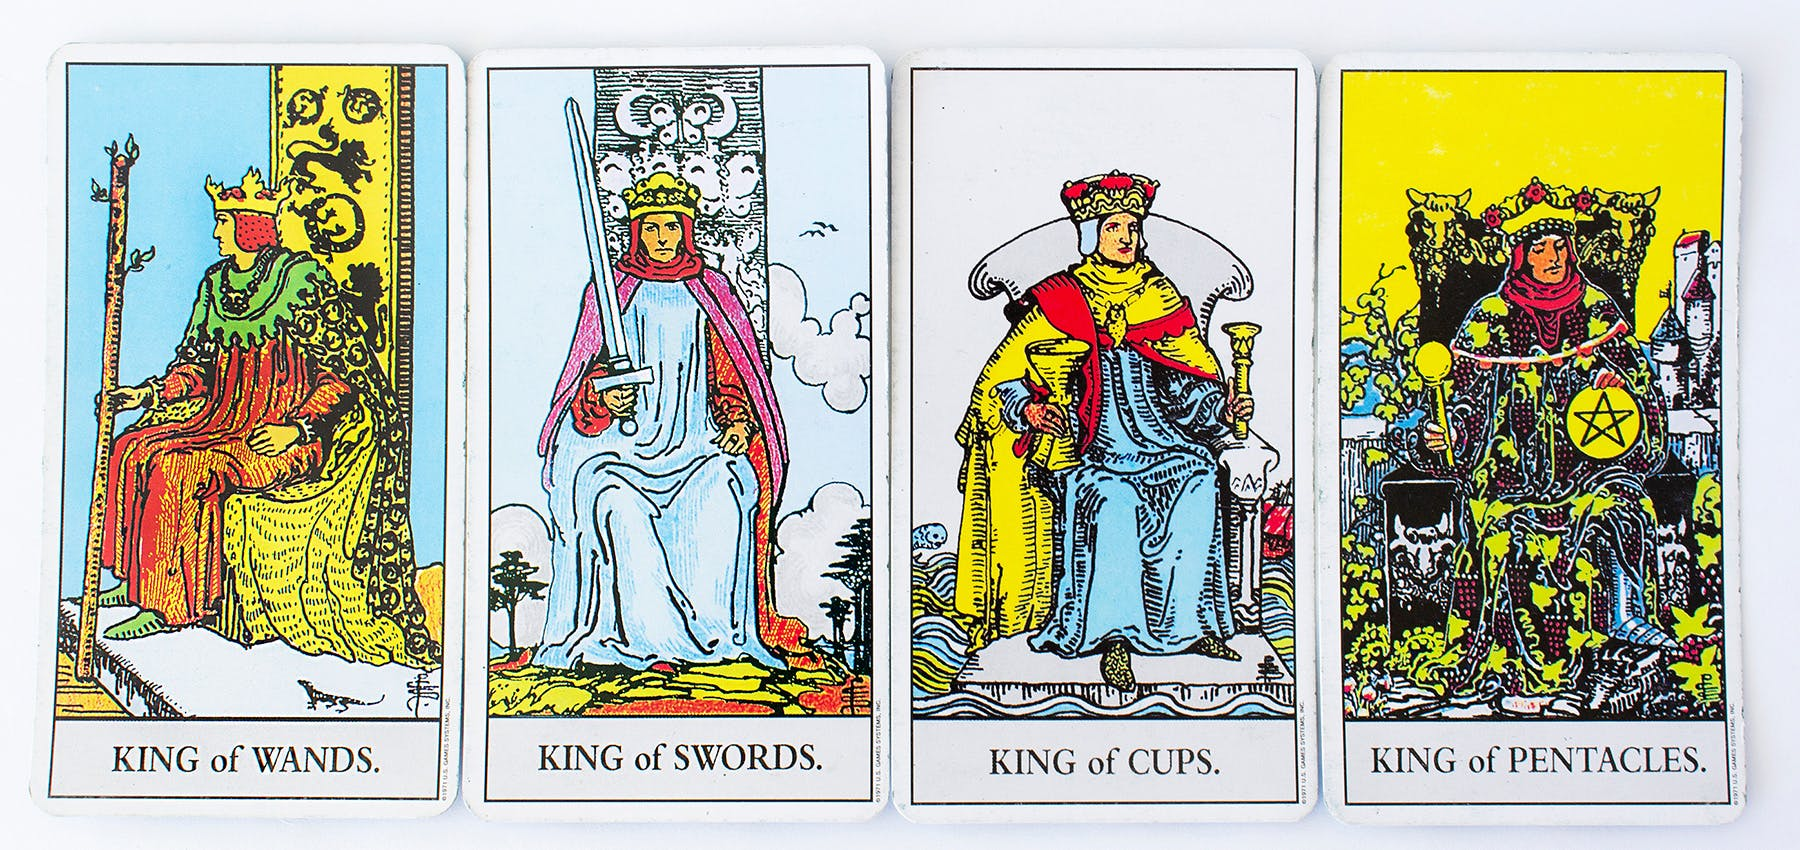 Examples of the Minor Arcana cards, includes an image of the King of wands, King of swords, king of cups, and the king of pentacles.